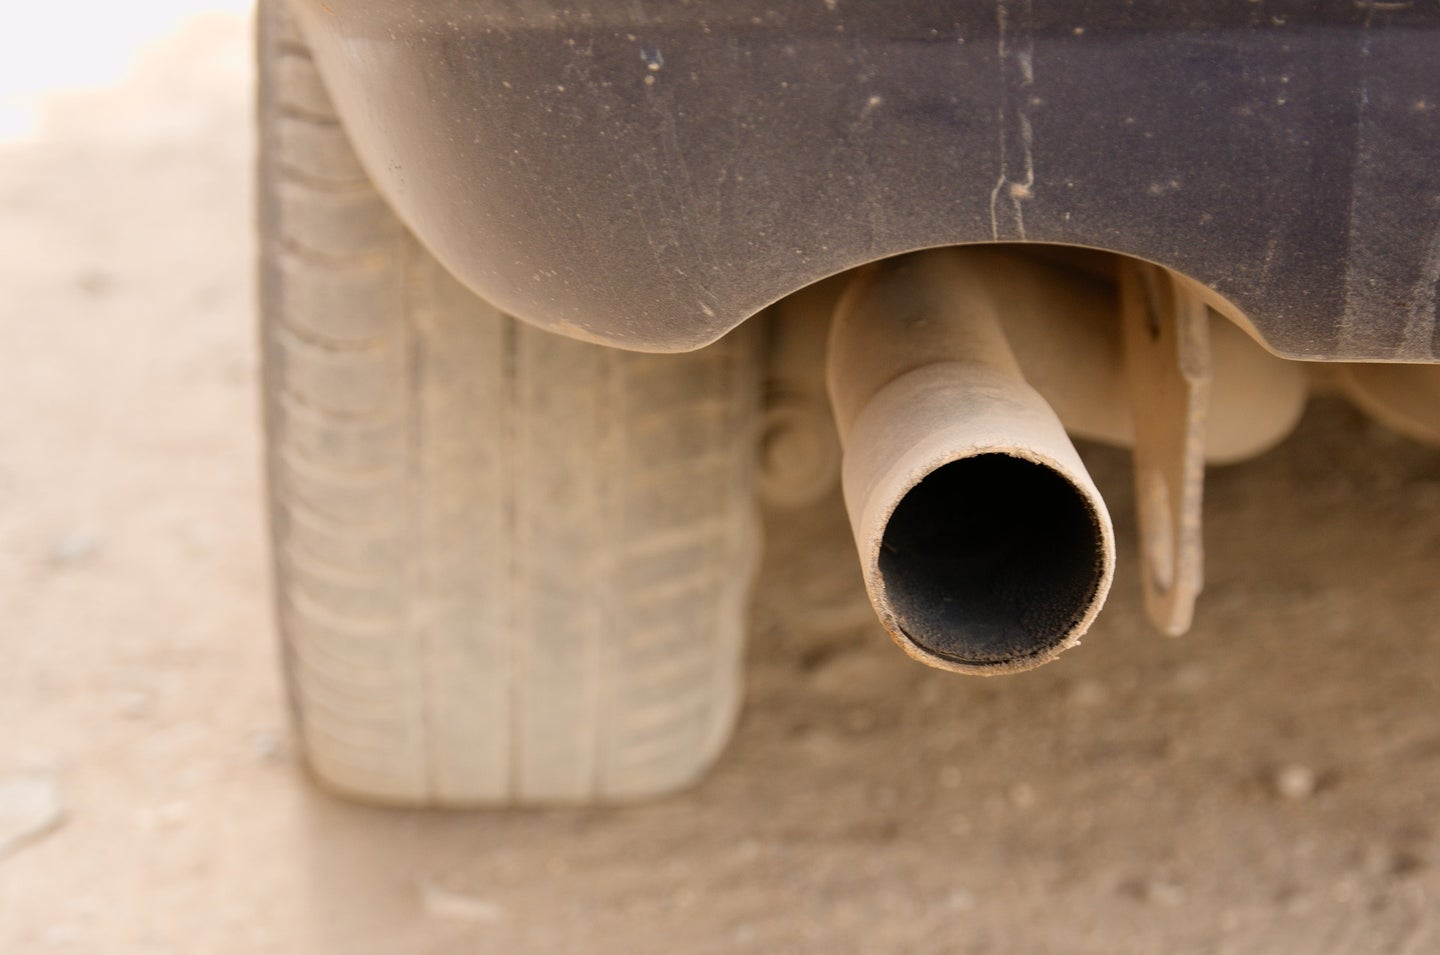 Dirty car tailpipe